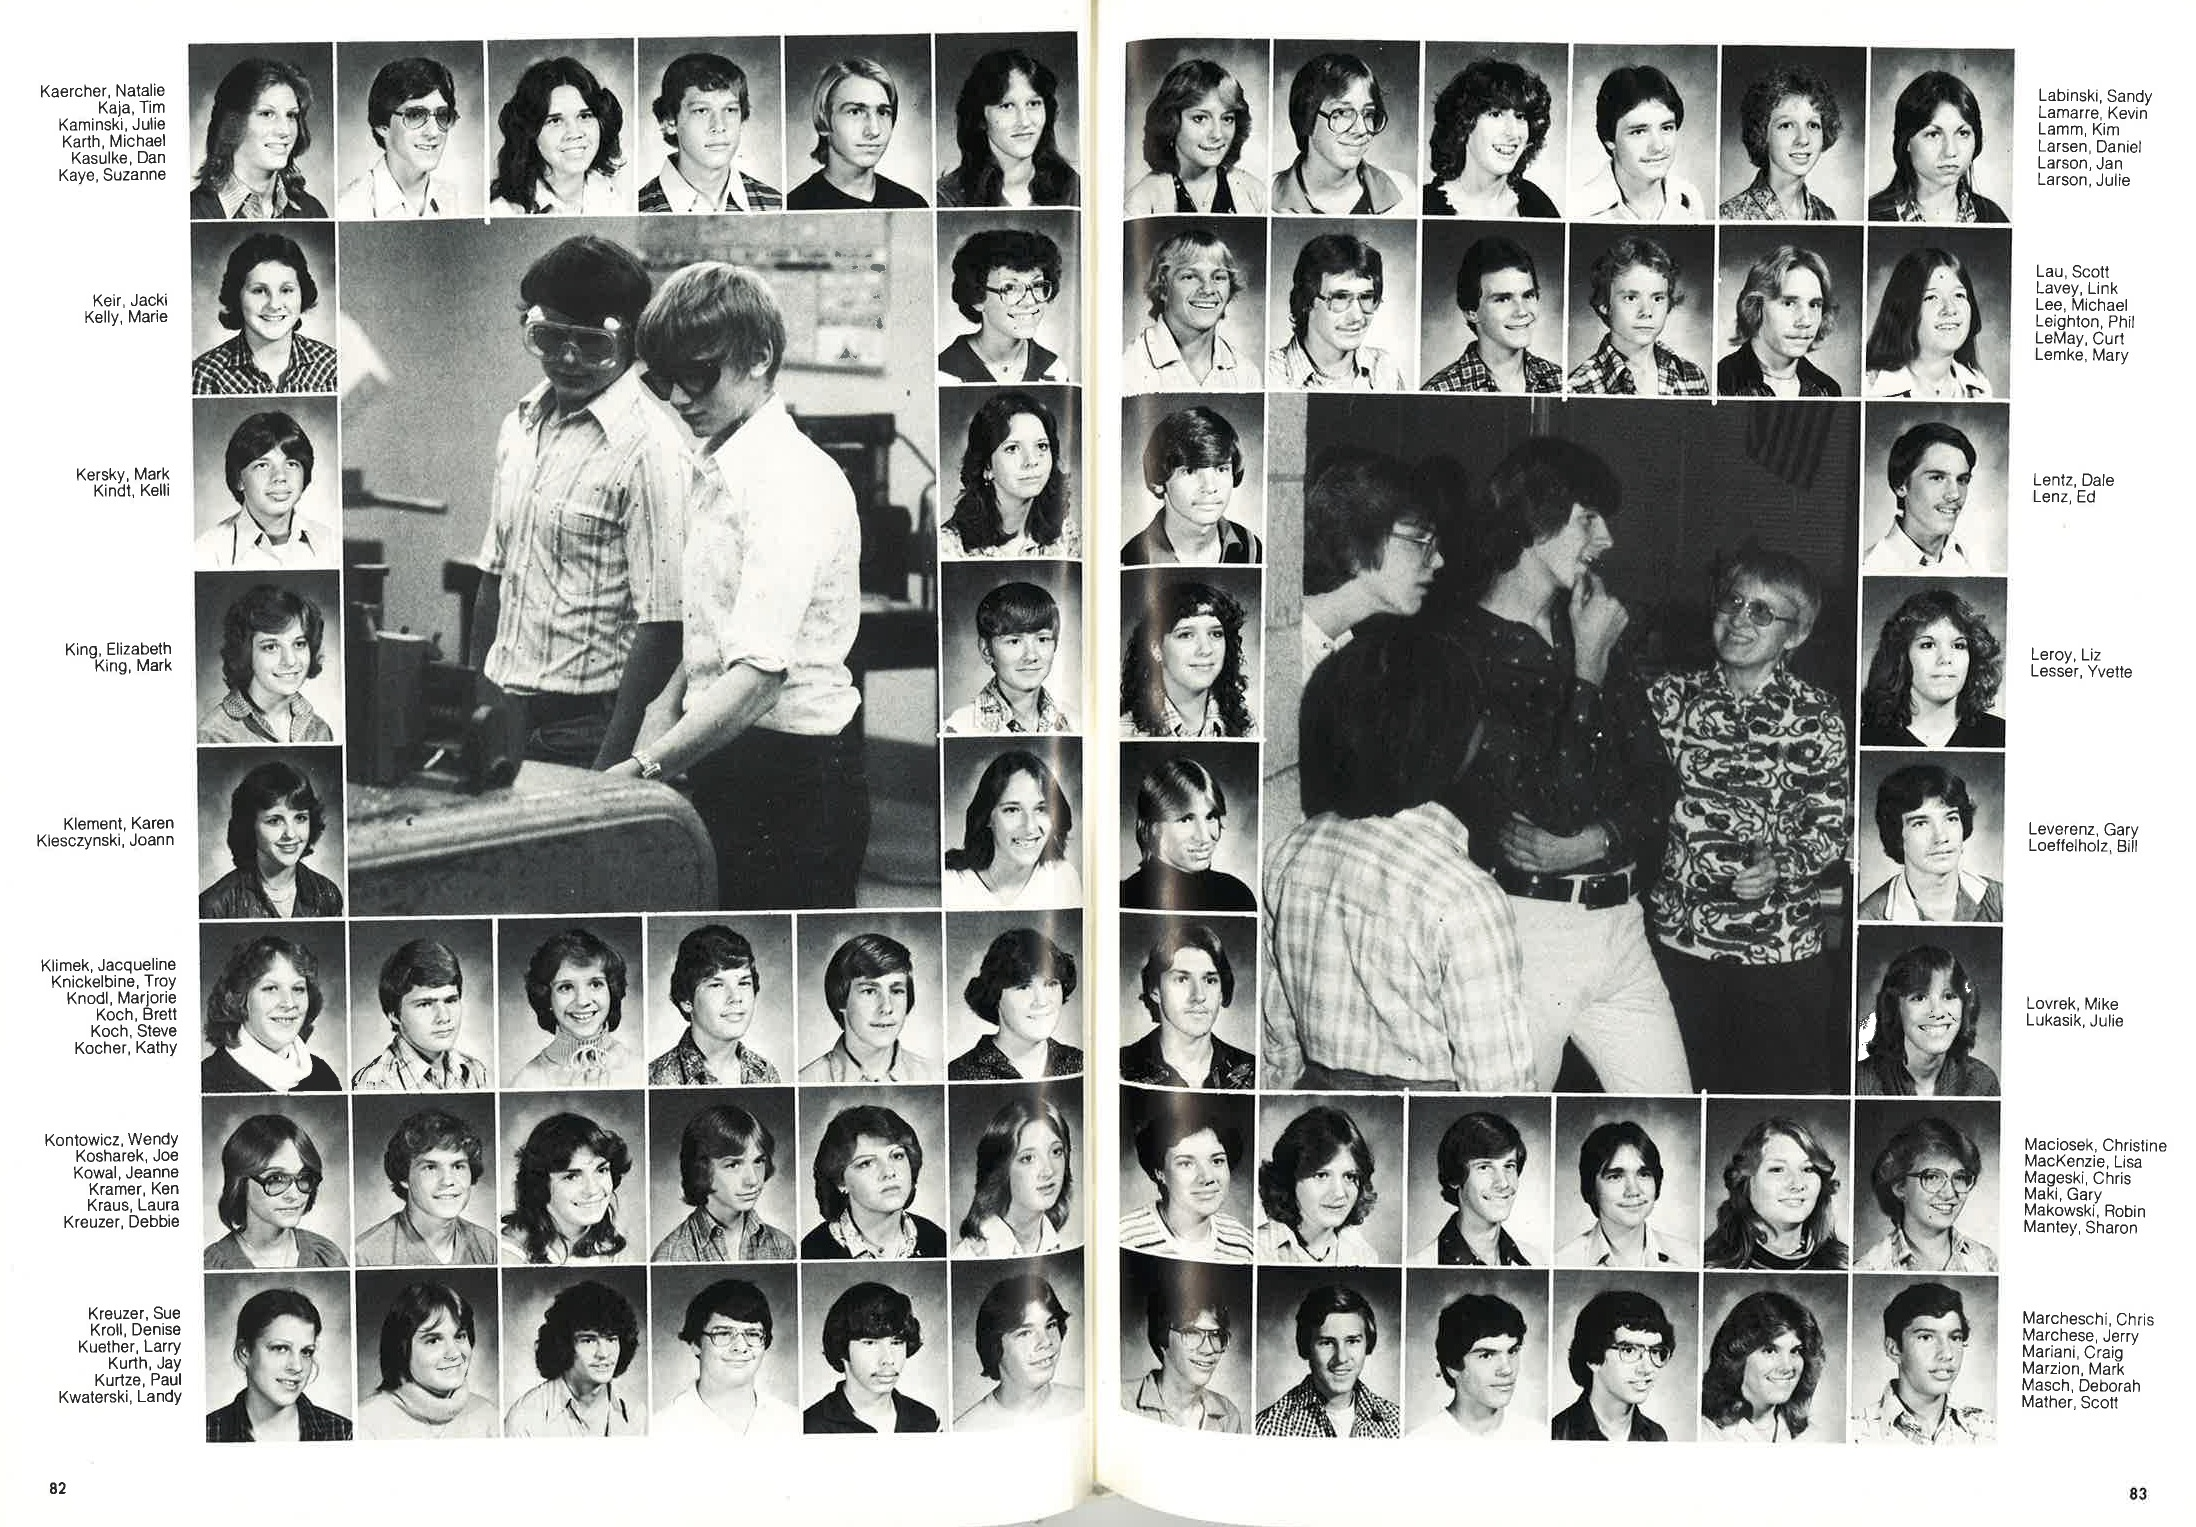 1980_Yearbook_82.jpg